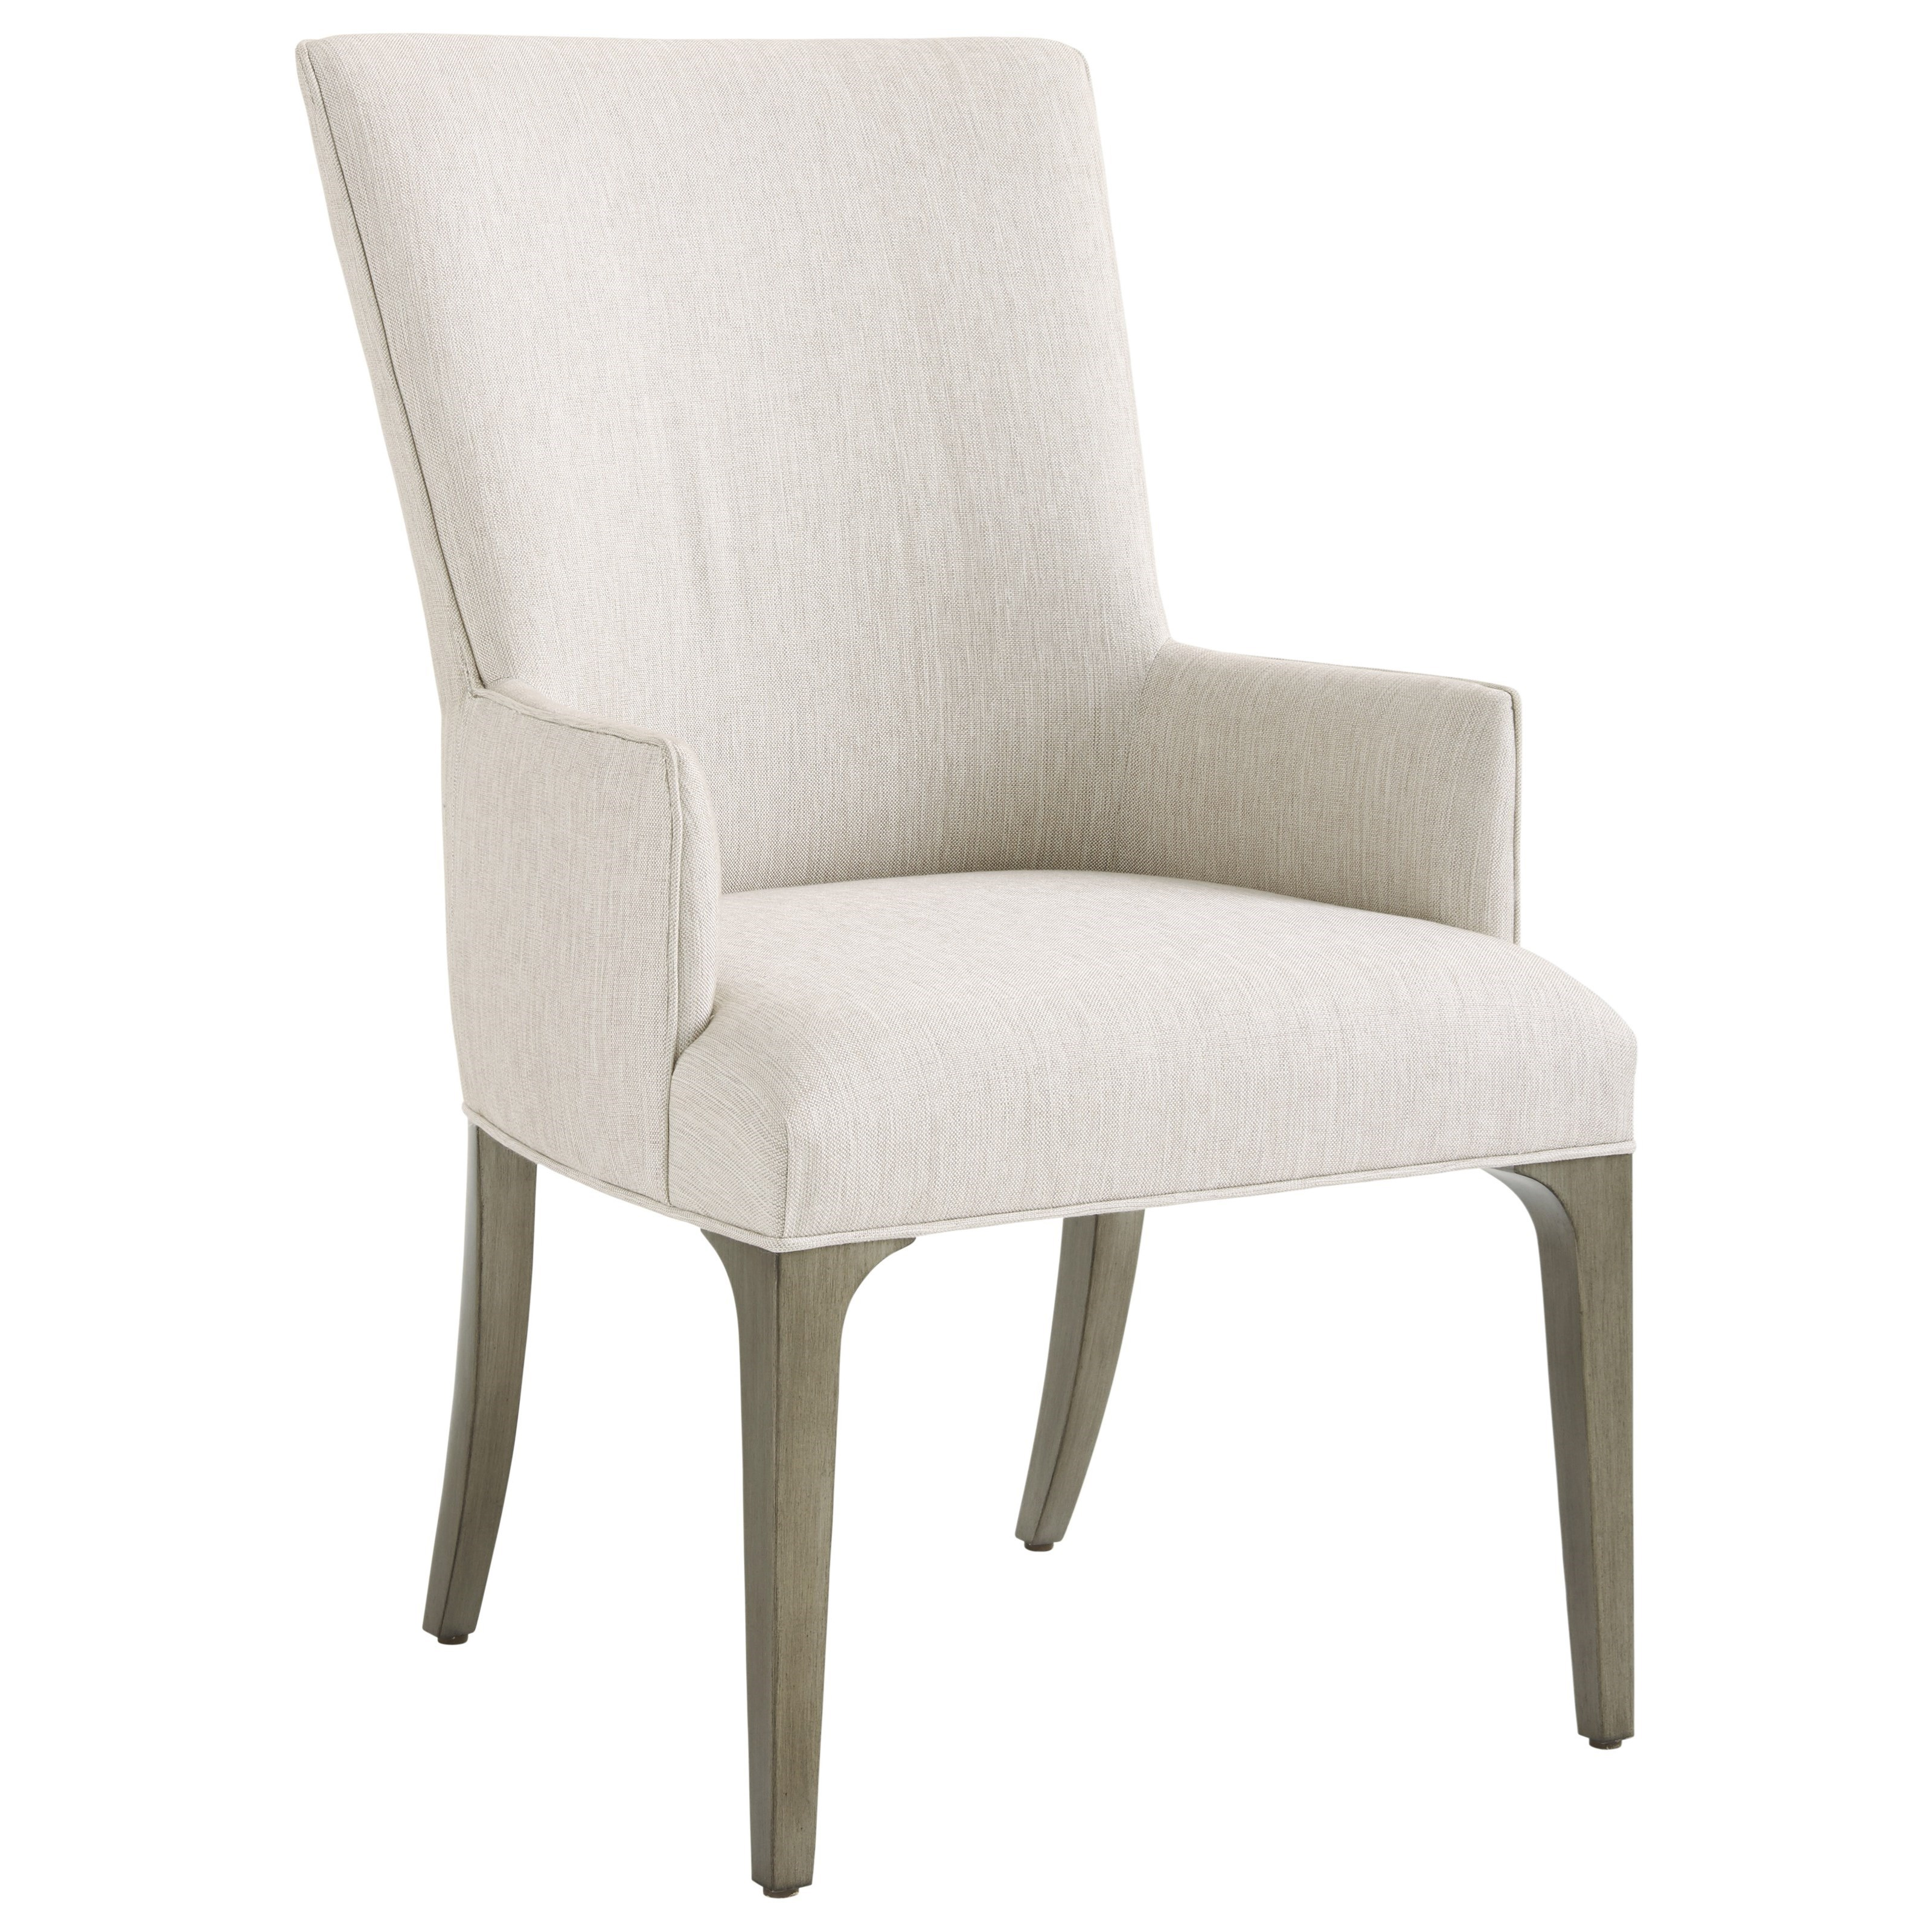 Bellamy Upholstered Arm Chair (married)